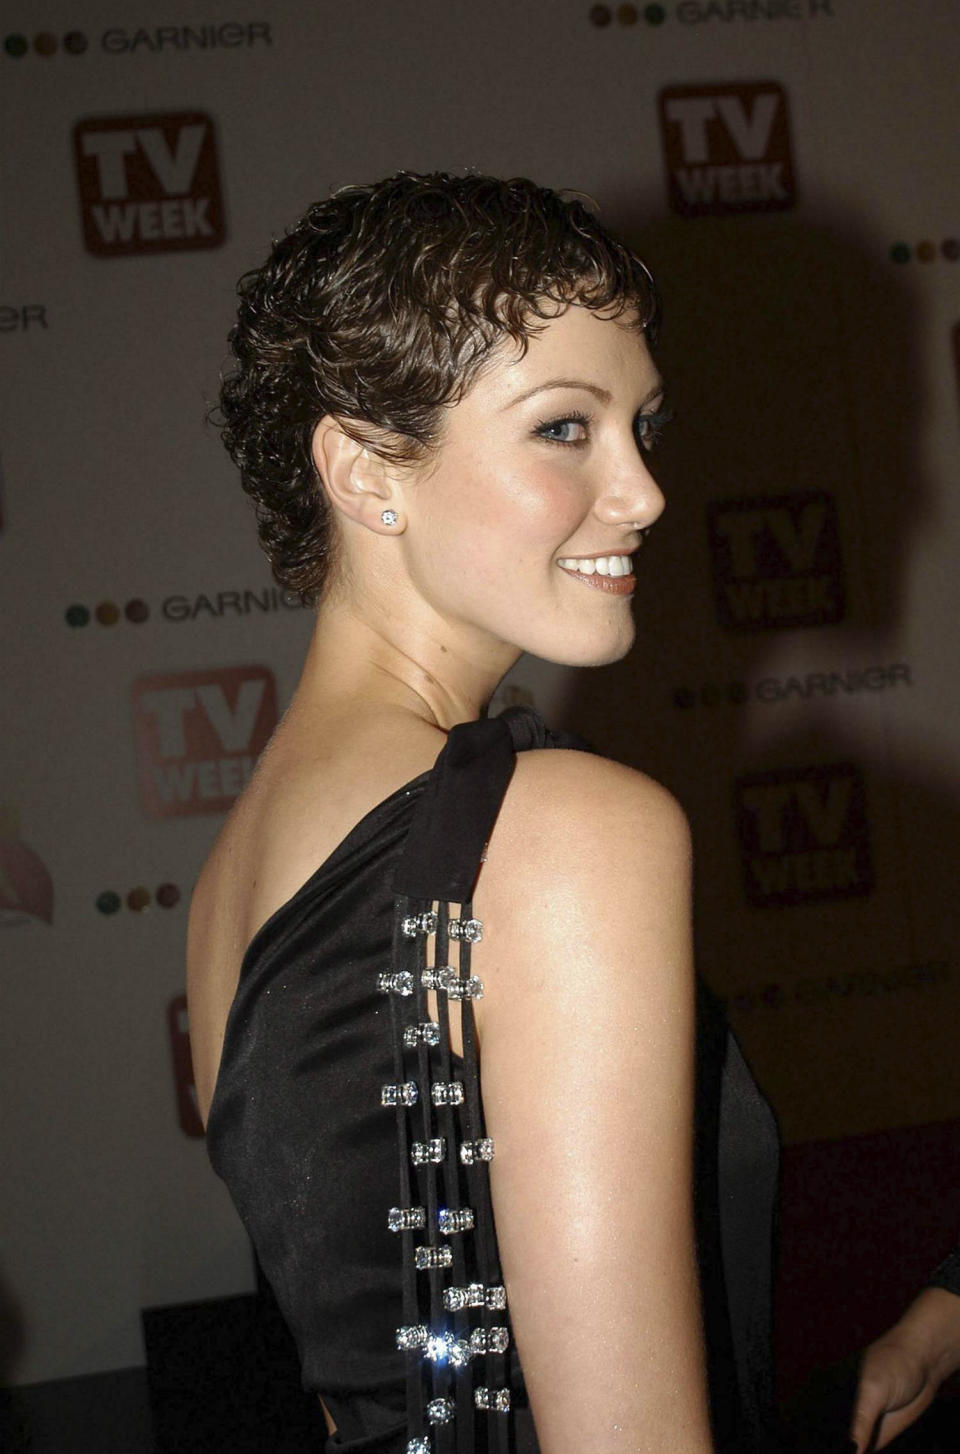 18 April 2004 - DELTA GOODREM wearing a black jersey creation by fashion designer PETER- MORRISSEY, with diamonds sparkling from three strands hanging from the shoulder over her back ,  arriving at the 46th TV Week Logie Awards  at the Crown Casino -  Melbourne, Victoria, Australia. (Photo by Regis Martin/Getty Images)